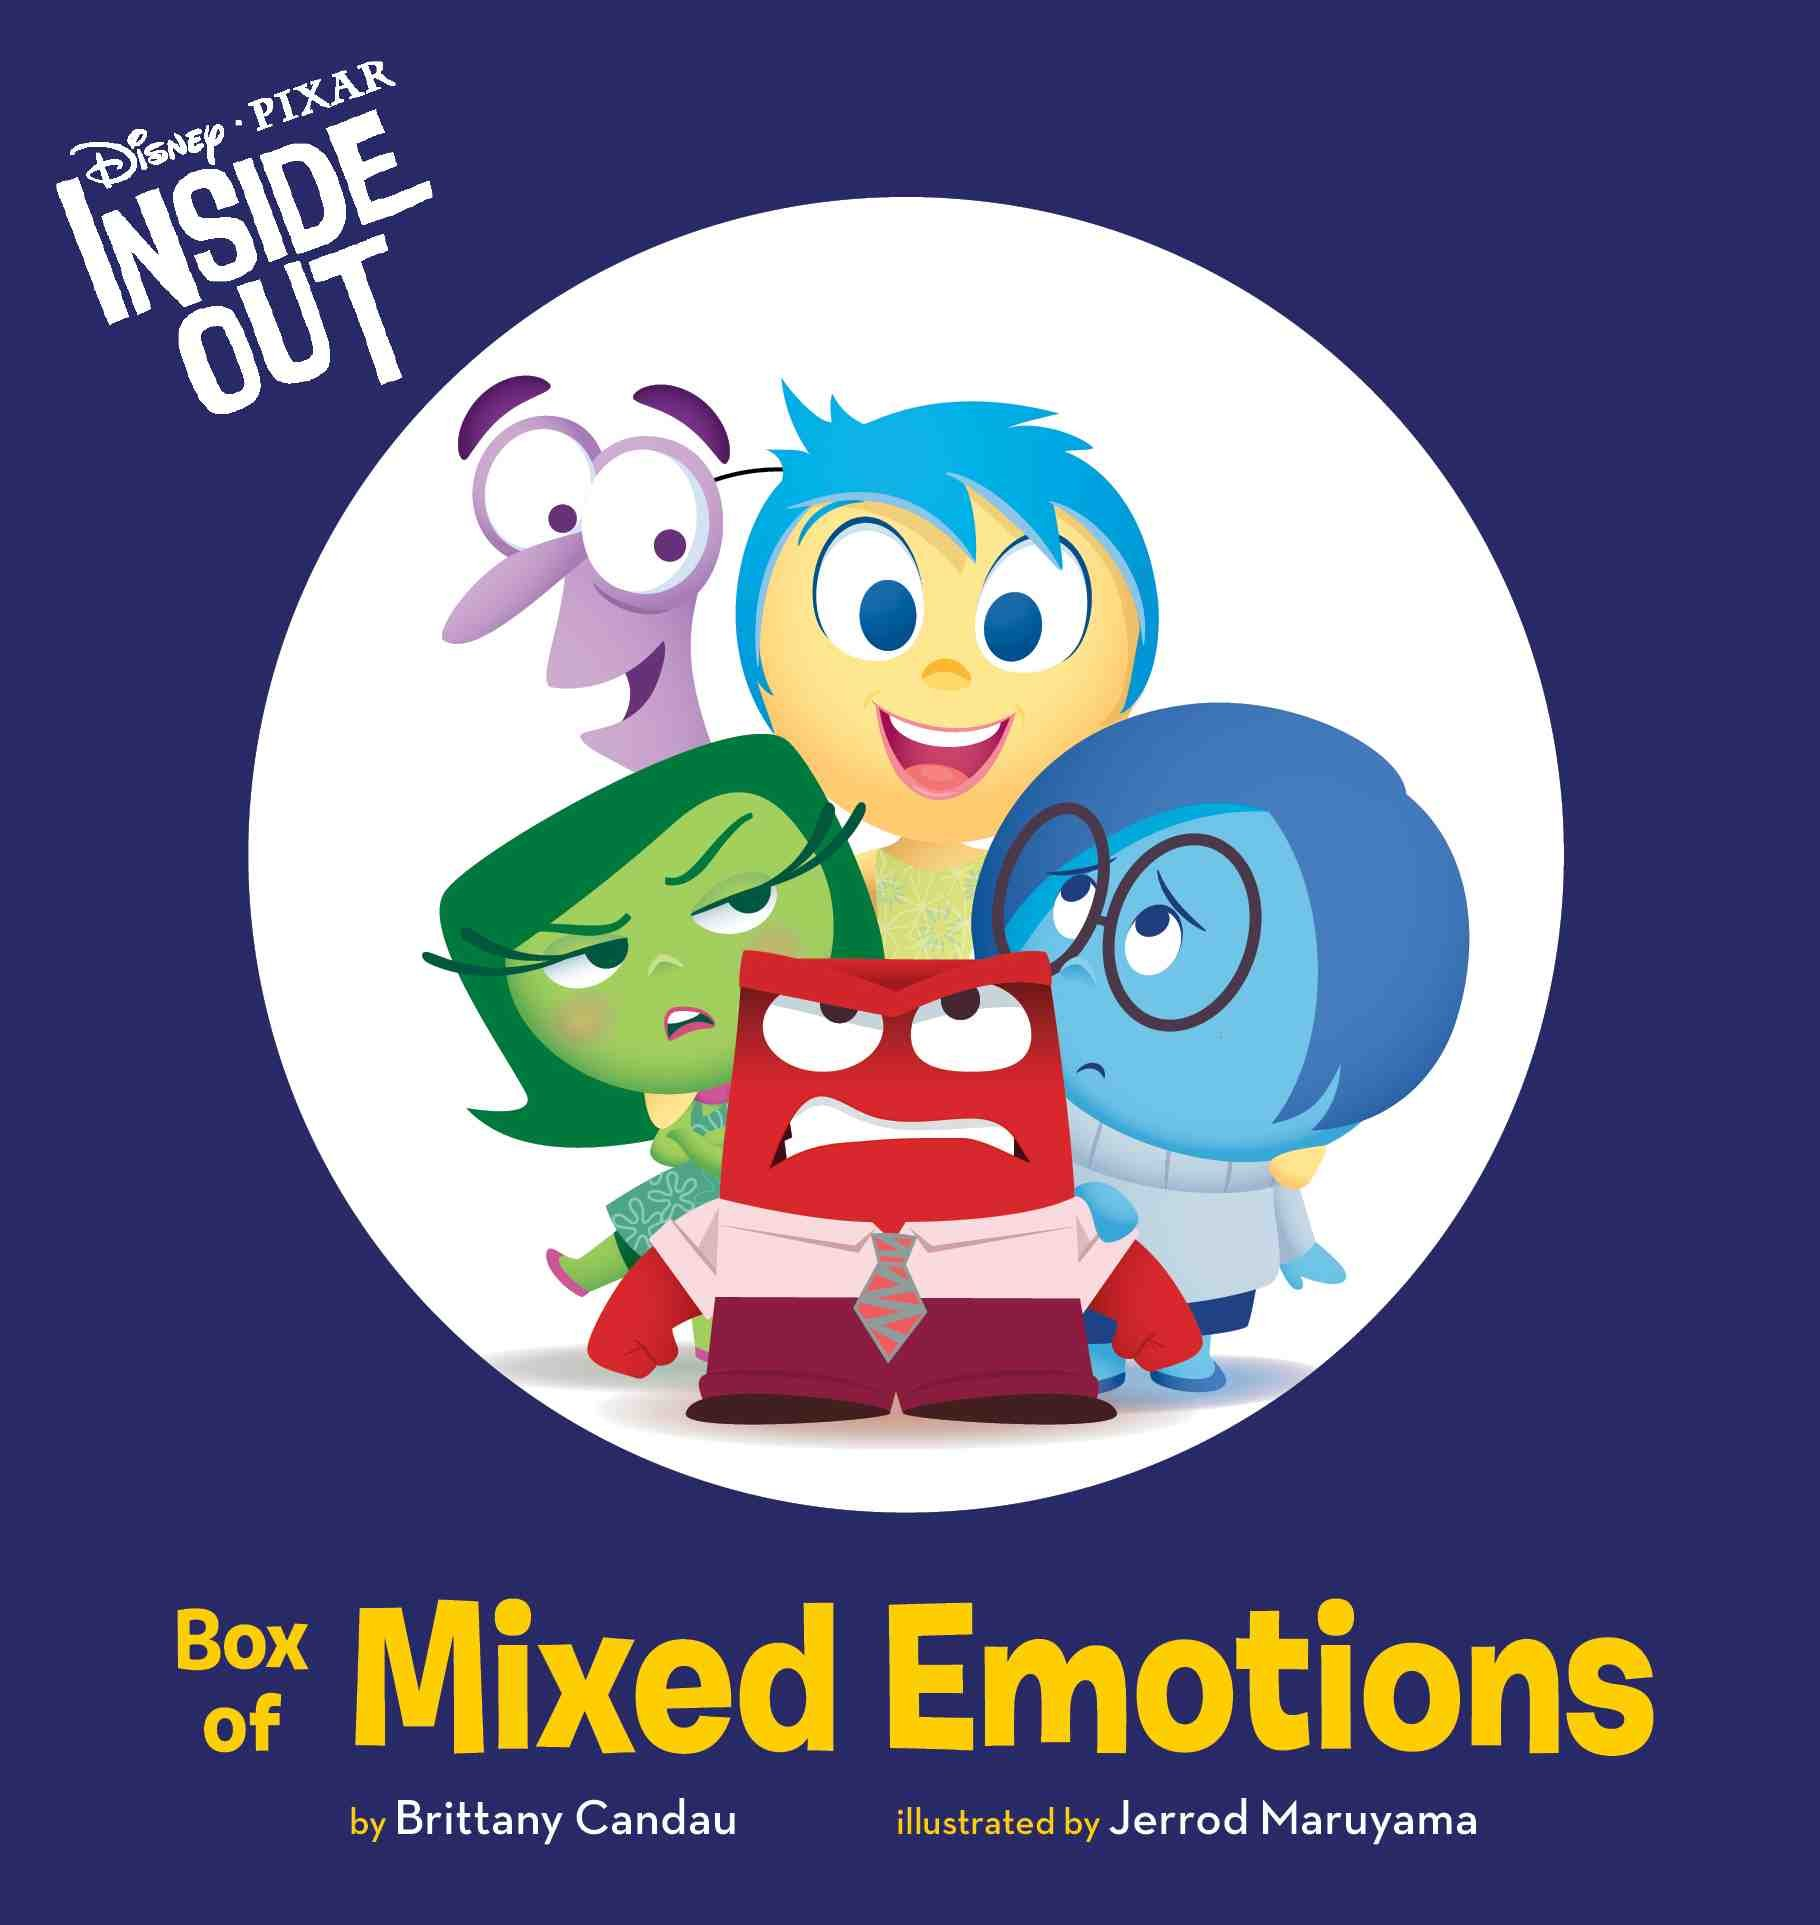 Joy inside out coloring book games - Inside Out Box Of Mixed Emotions Disney Book Group 9781484716717 Amazon Com Books